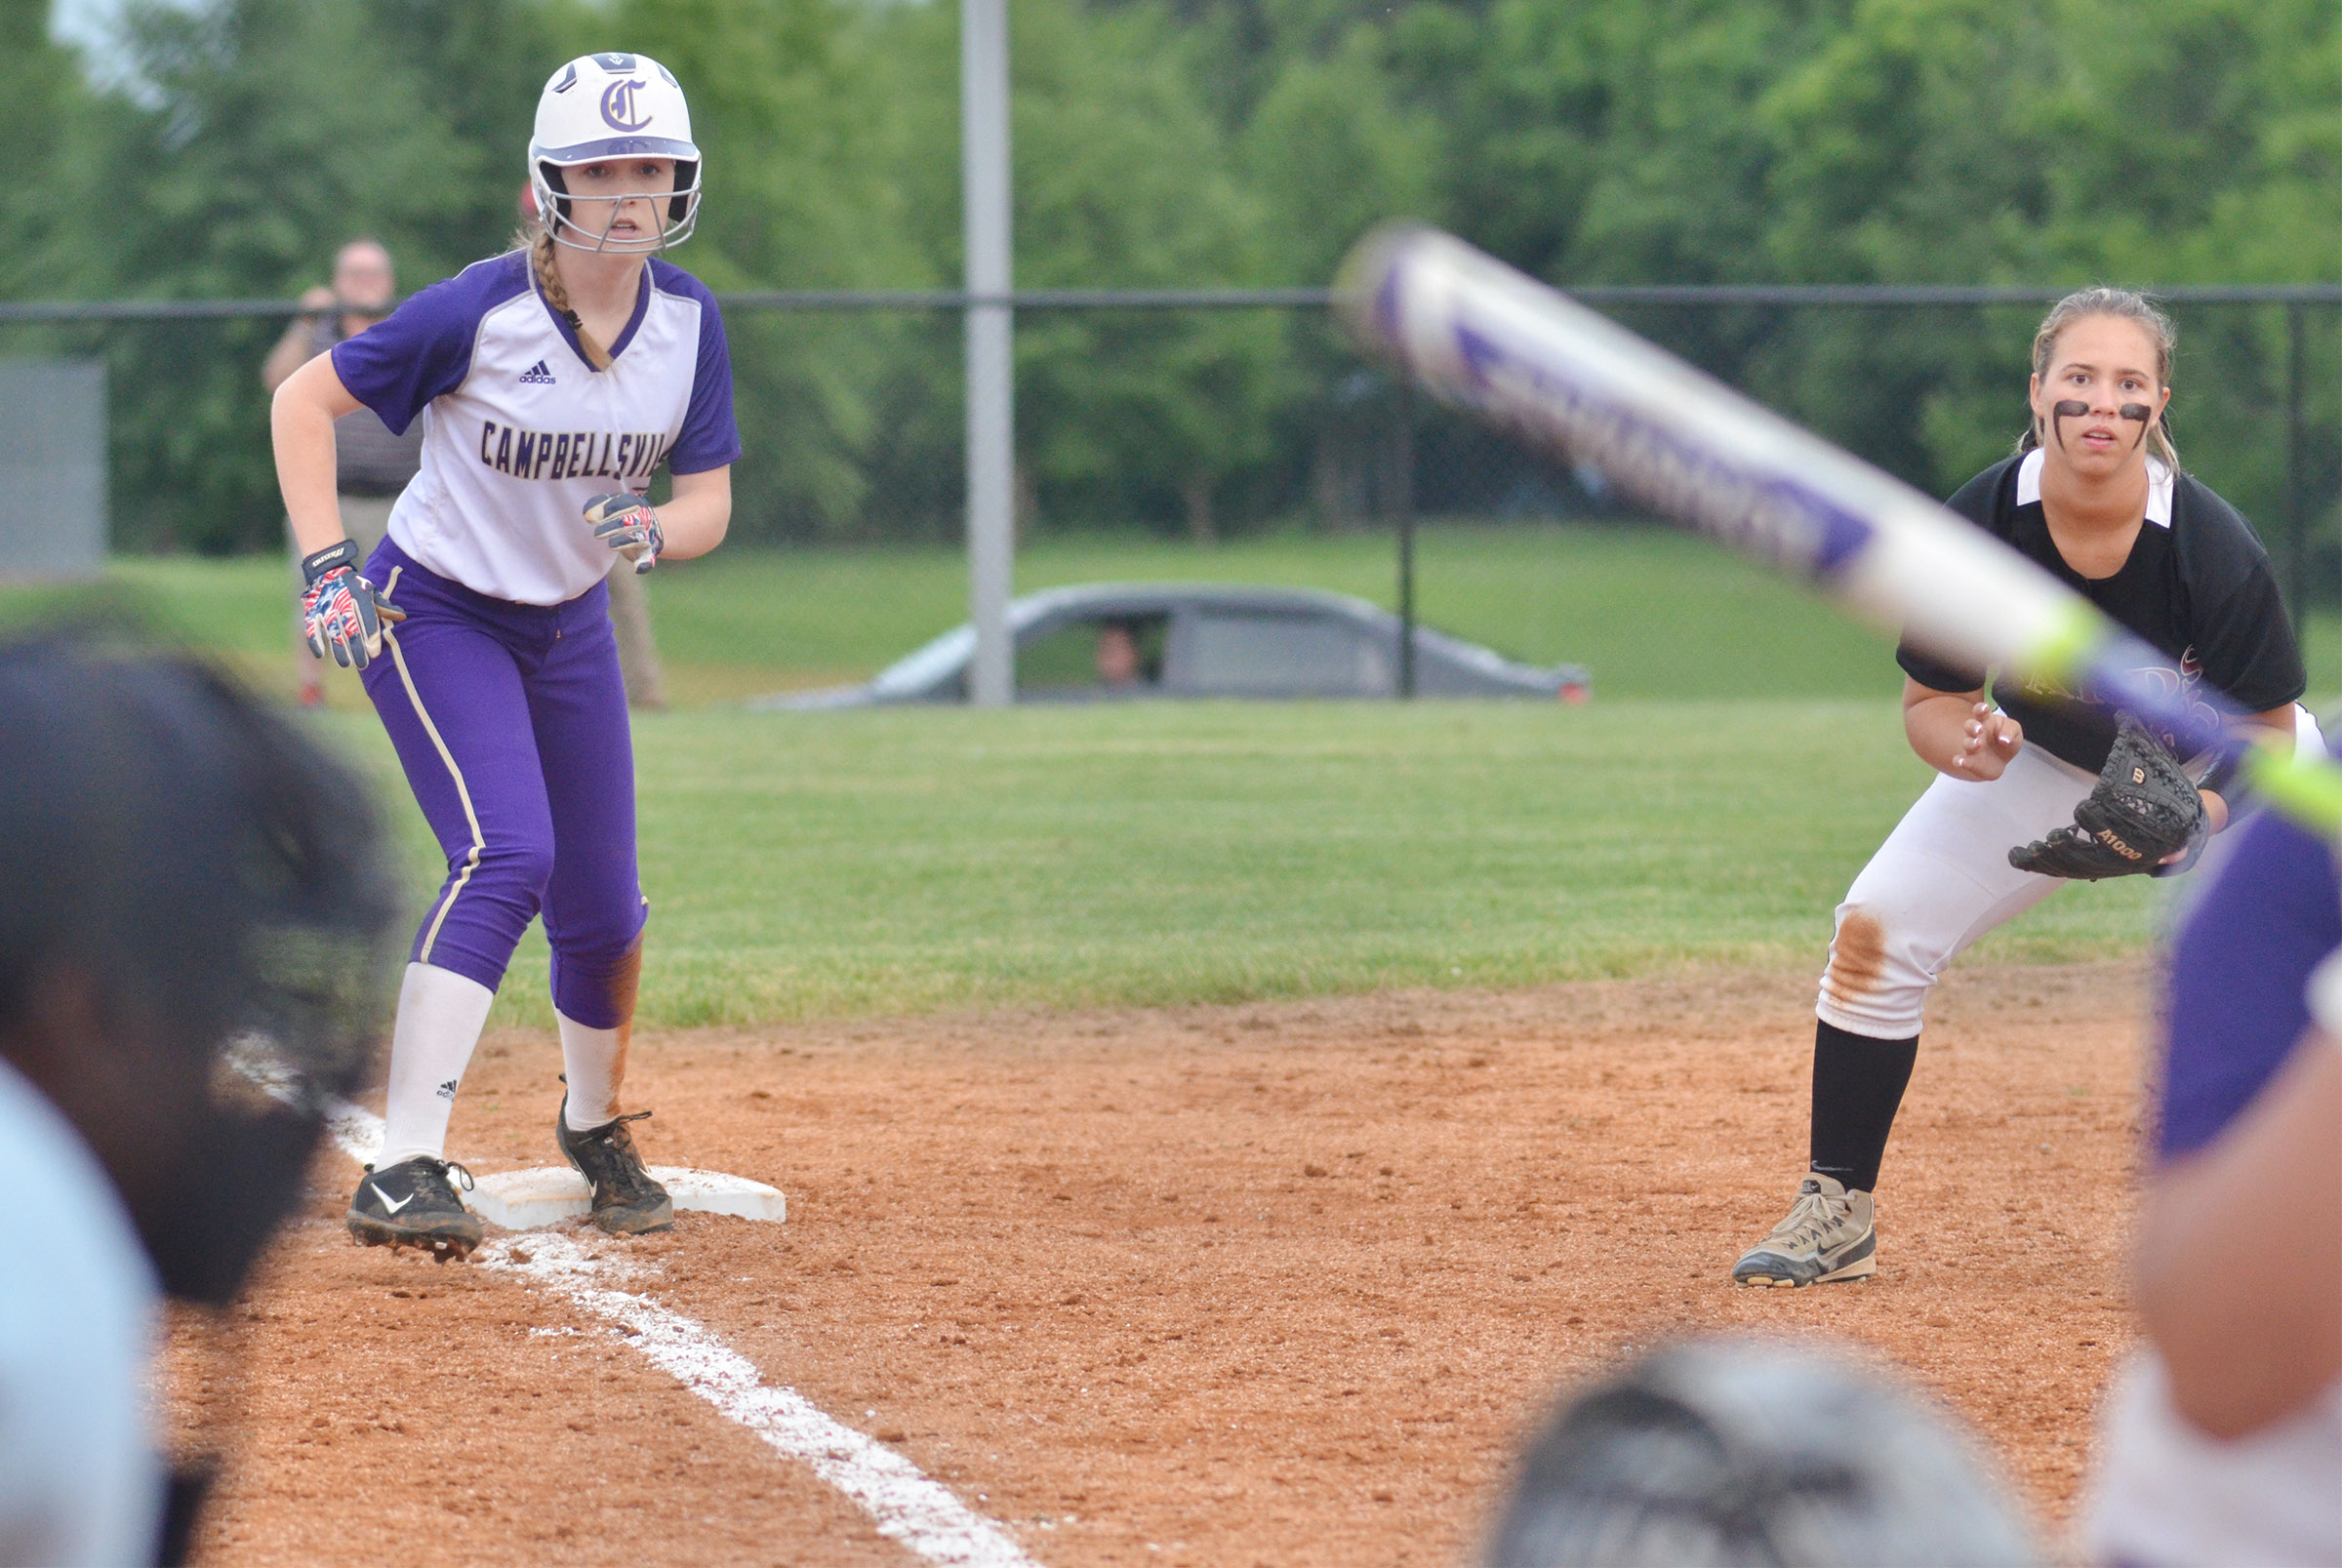 Campbellsville Middle School eighth-grader Catlyn Clausen looks to score.